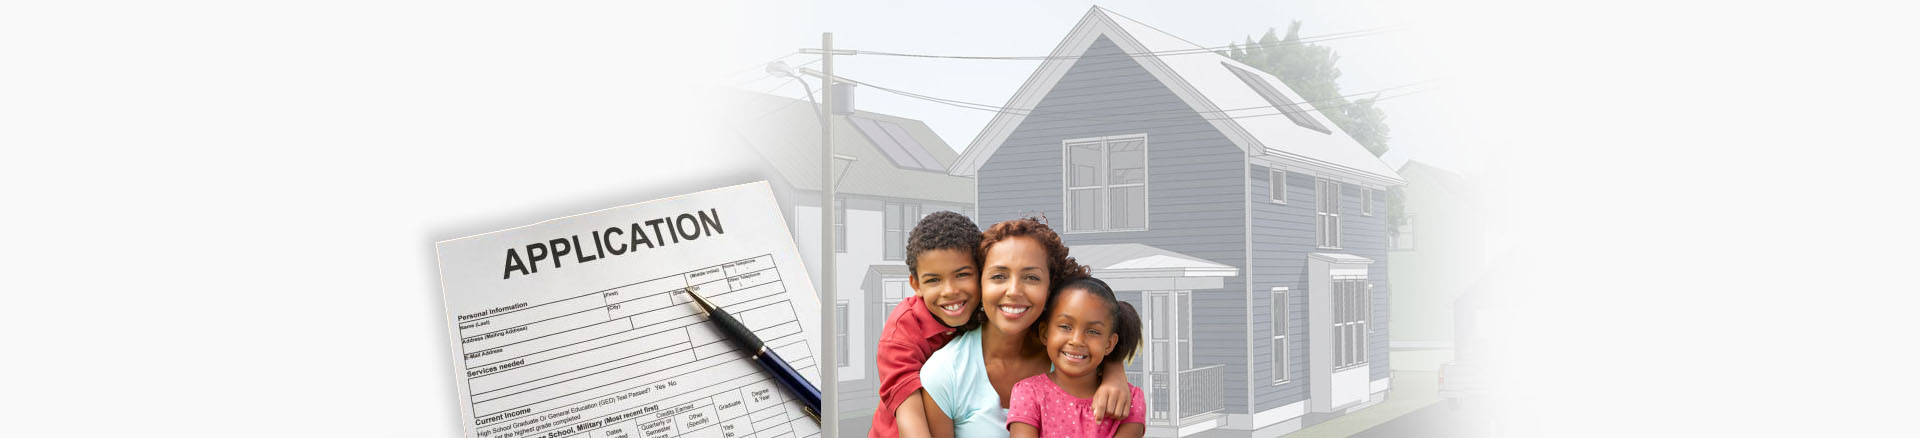 Housing And Apartment Applications Section 8 Applications